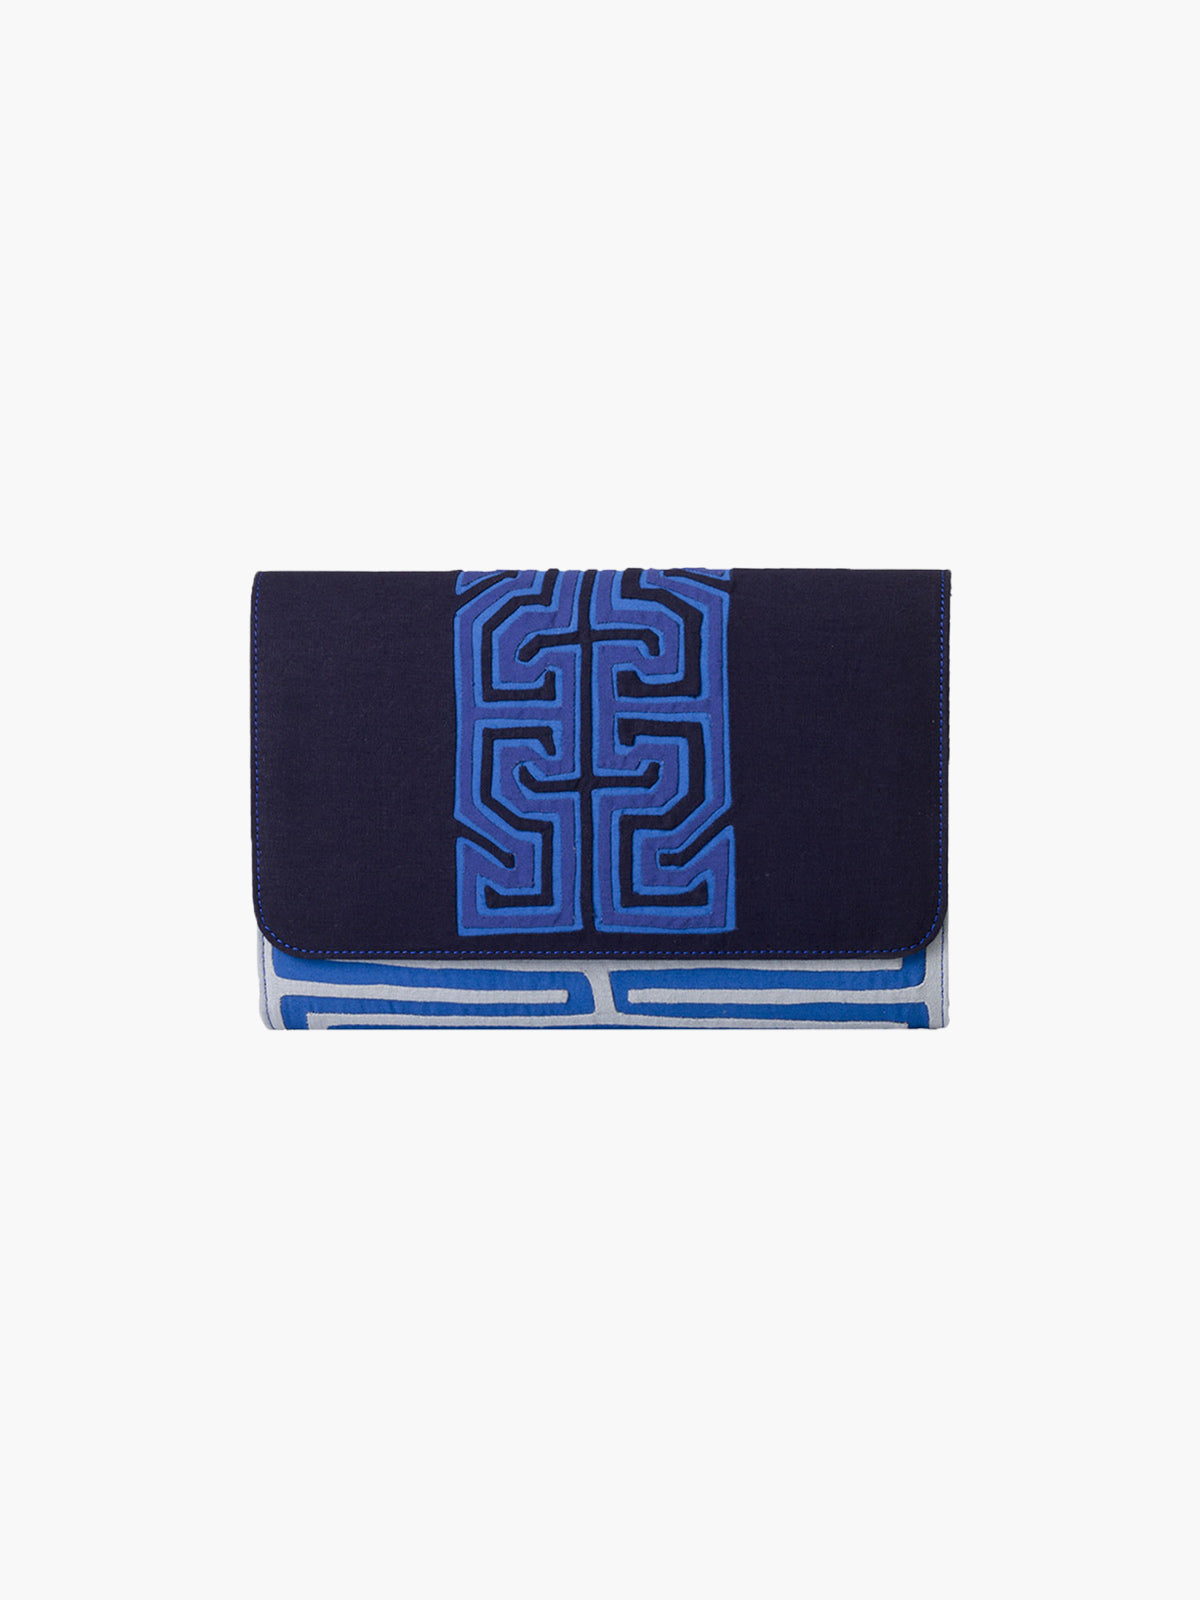 Medium Clutch | Sendero Indigo Medium Clutch | Sendero Indigo